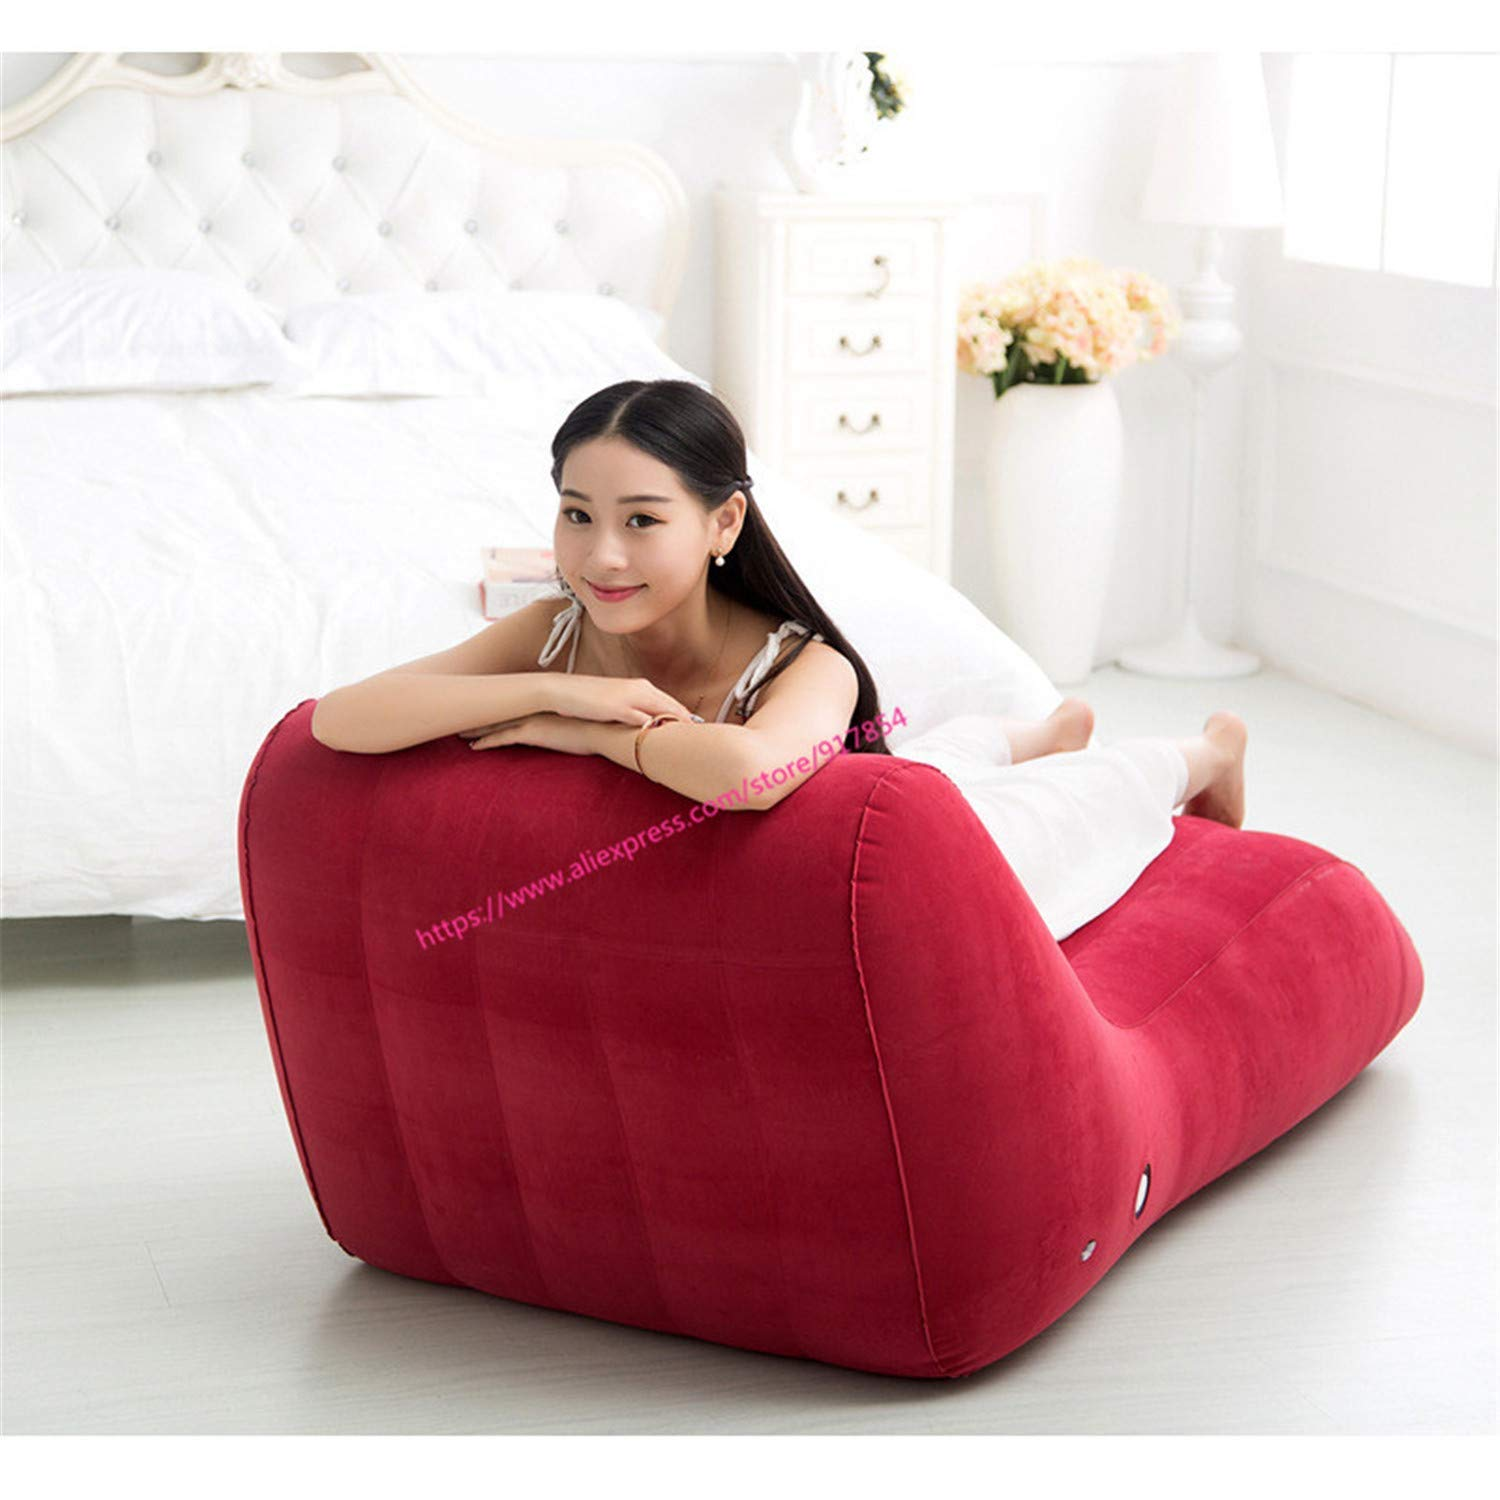 Love,Superior S-Type Position Sex Sofa, Sex Furniture Inflatable Chair, Love Sex Chair Adult Car Bed Set Sex Toys for Couples.